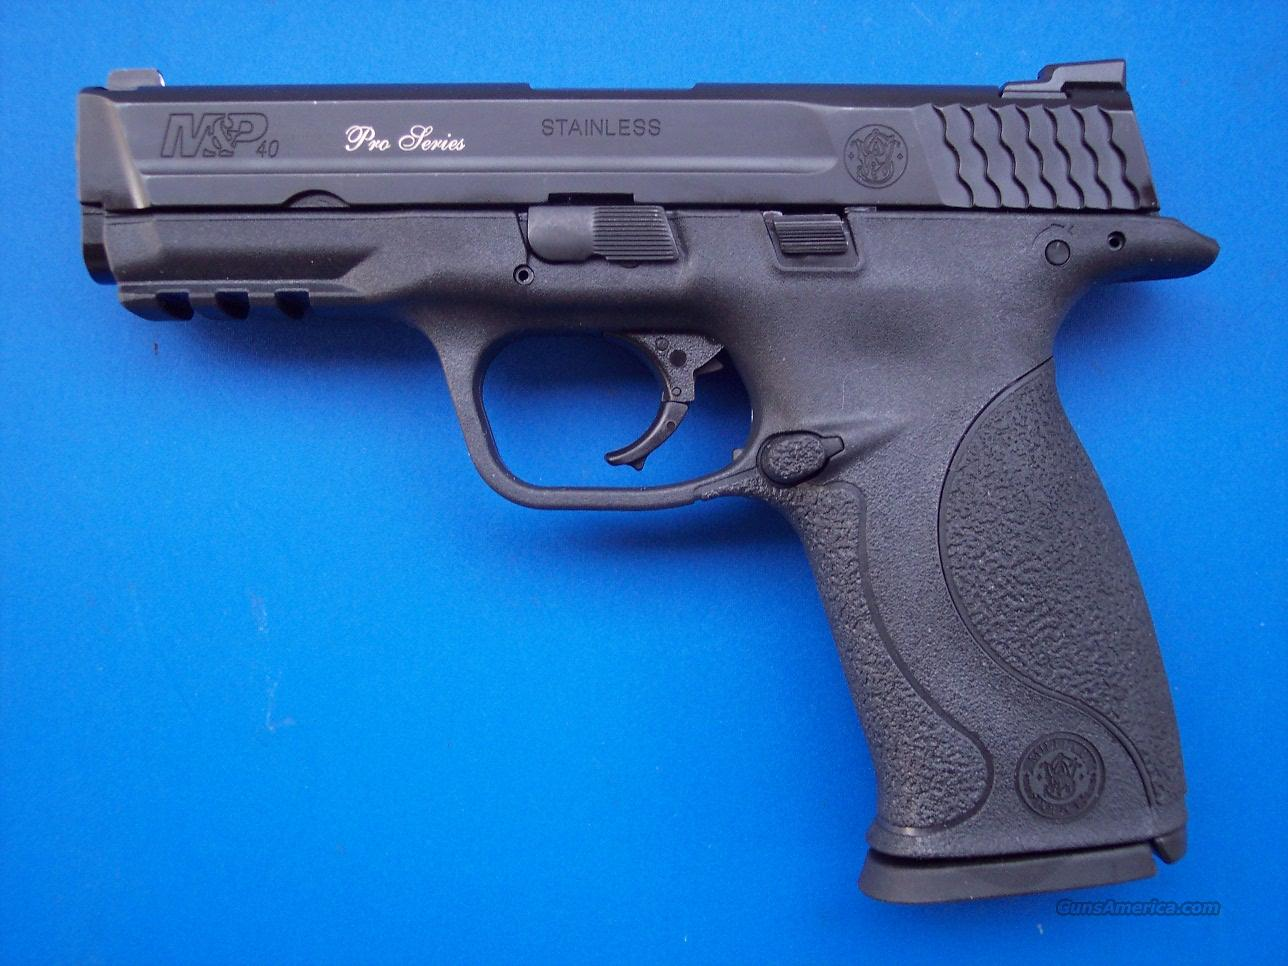 Smith & Wesson M&P Pro Series 40 S&W Night Sights *NEW*  Guns > Pistols > Smith & Wesson Pistols - Autos > Polymer Frame